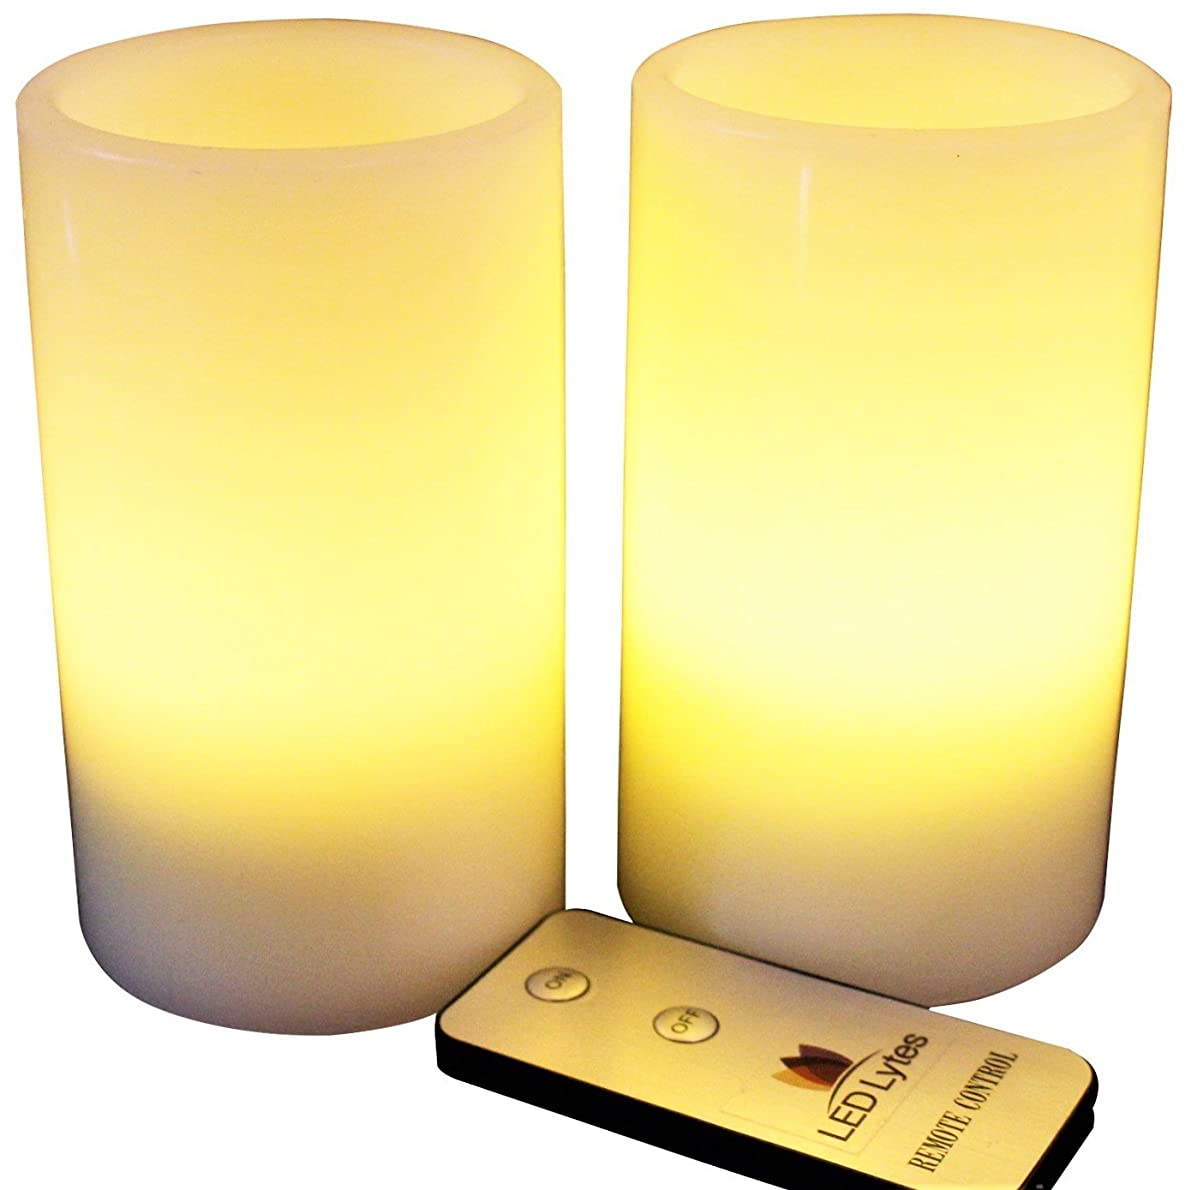 LED Lytes Flameless Candles, 2 Ivory Wax and Pale Yellow Flame Pillars Battery Operated with Remote for Parties, Wedding